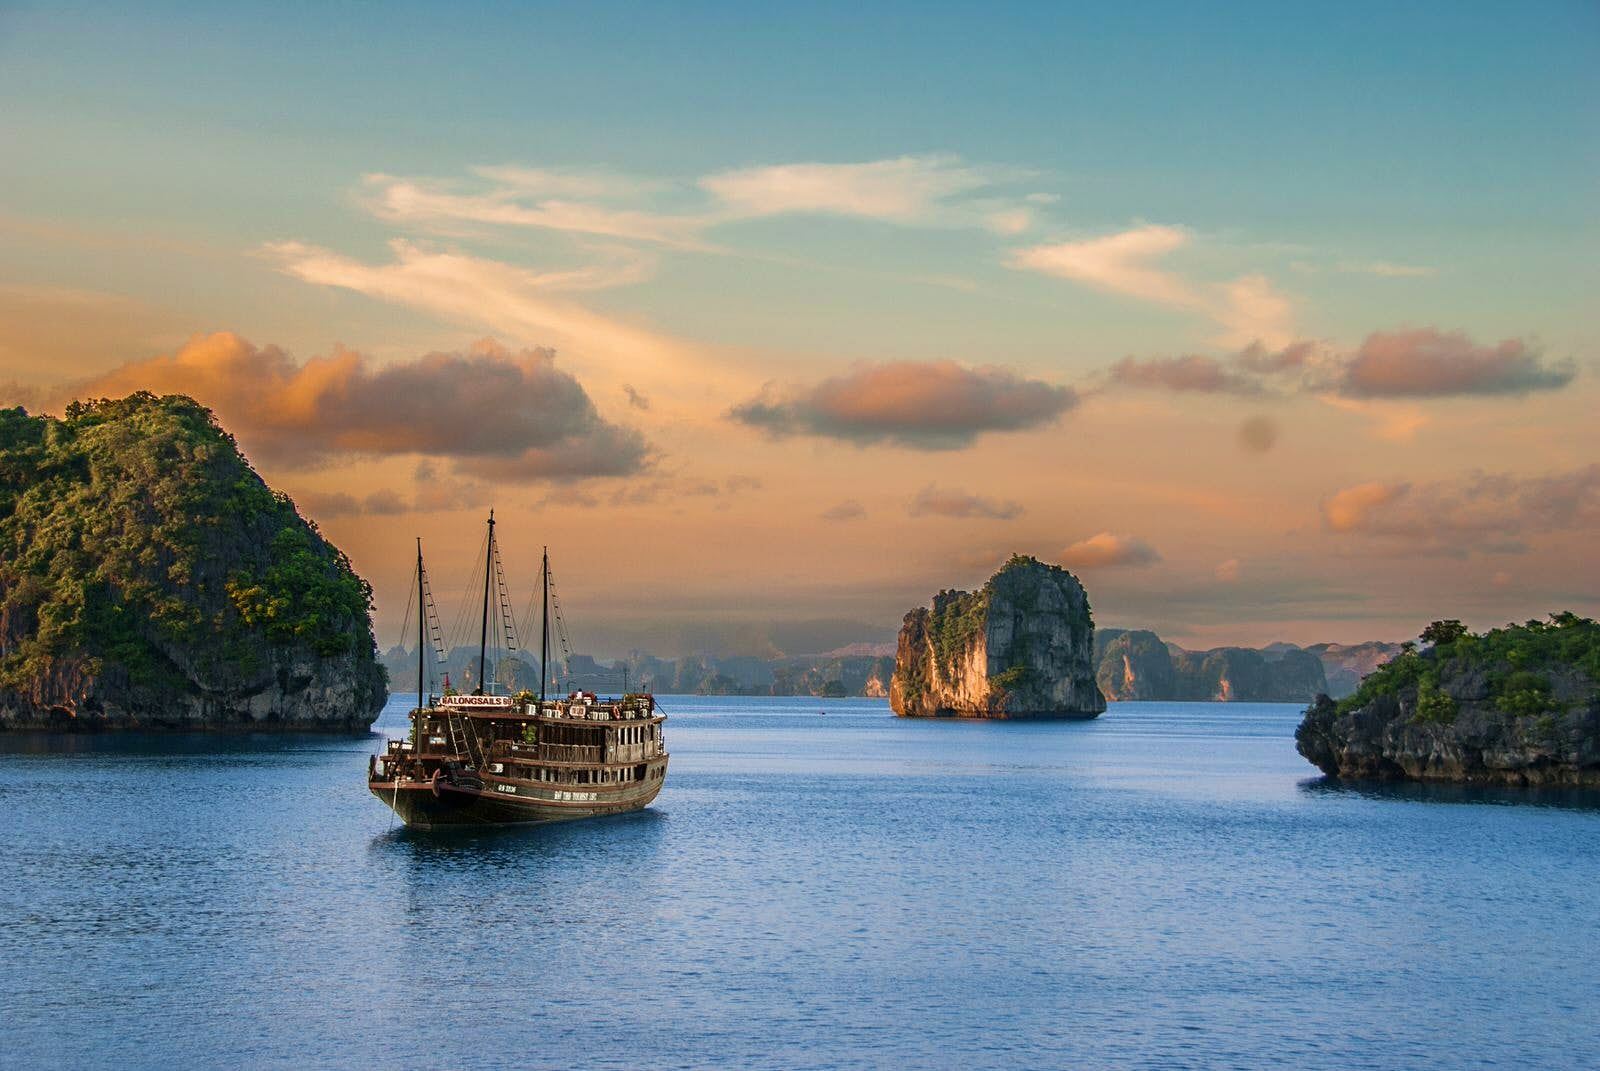 A traditional boat sails on the waters of Halong Bay, with limestone pillars protruding from the water surrounding it